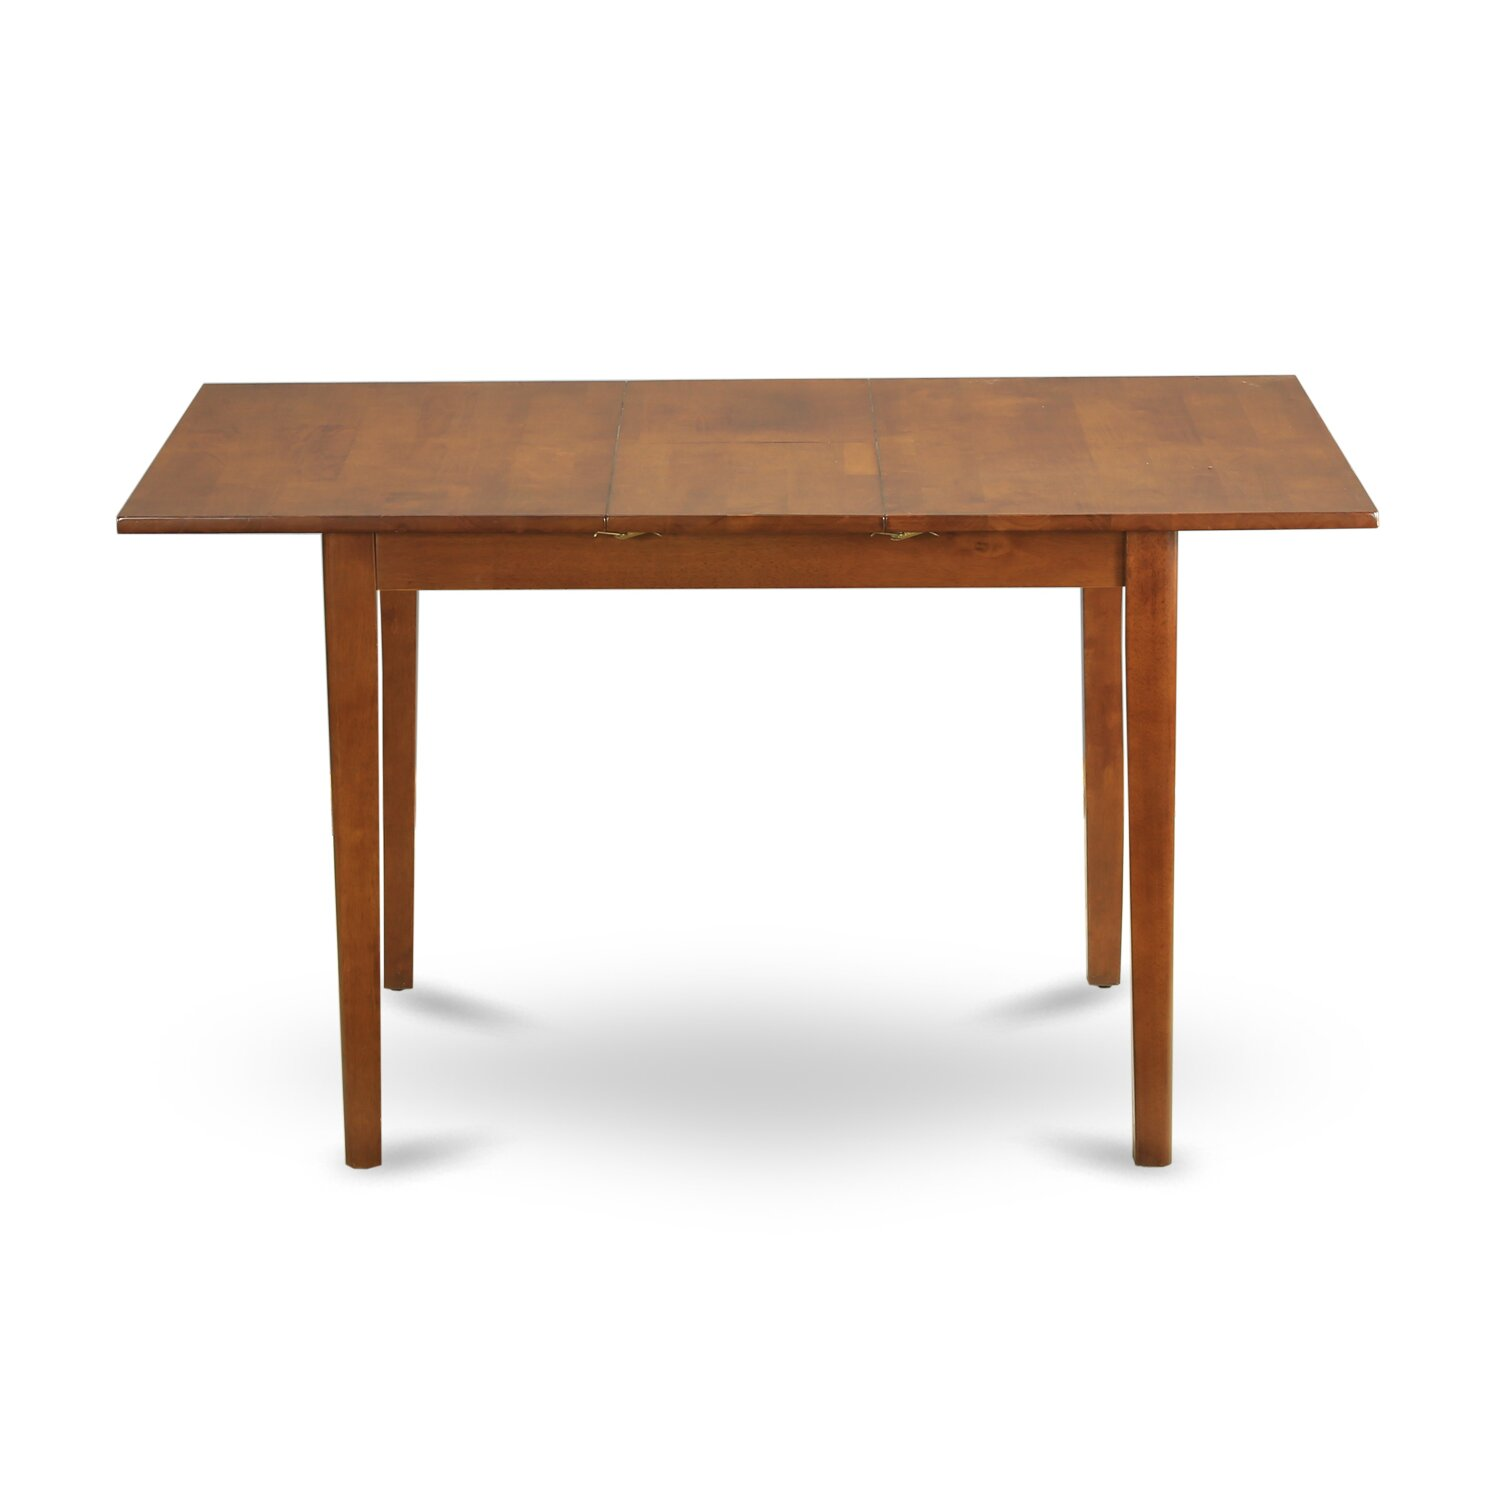 Wooden Importers Milan Dining Extendable Table amp Reviews  : Wooden Importers Milan Dining Extendable Table from www.wayfair.com size 1500 x 1500 jpeg 103kB